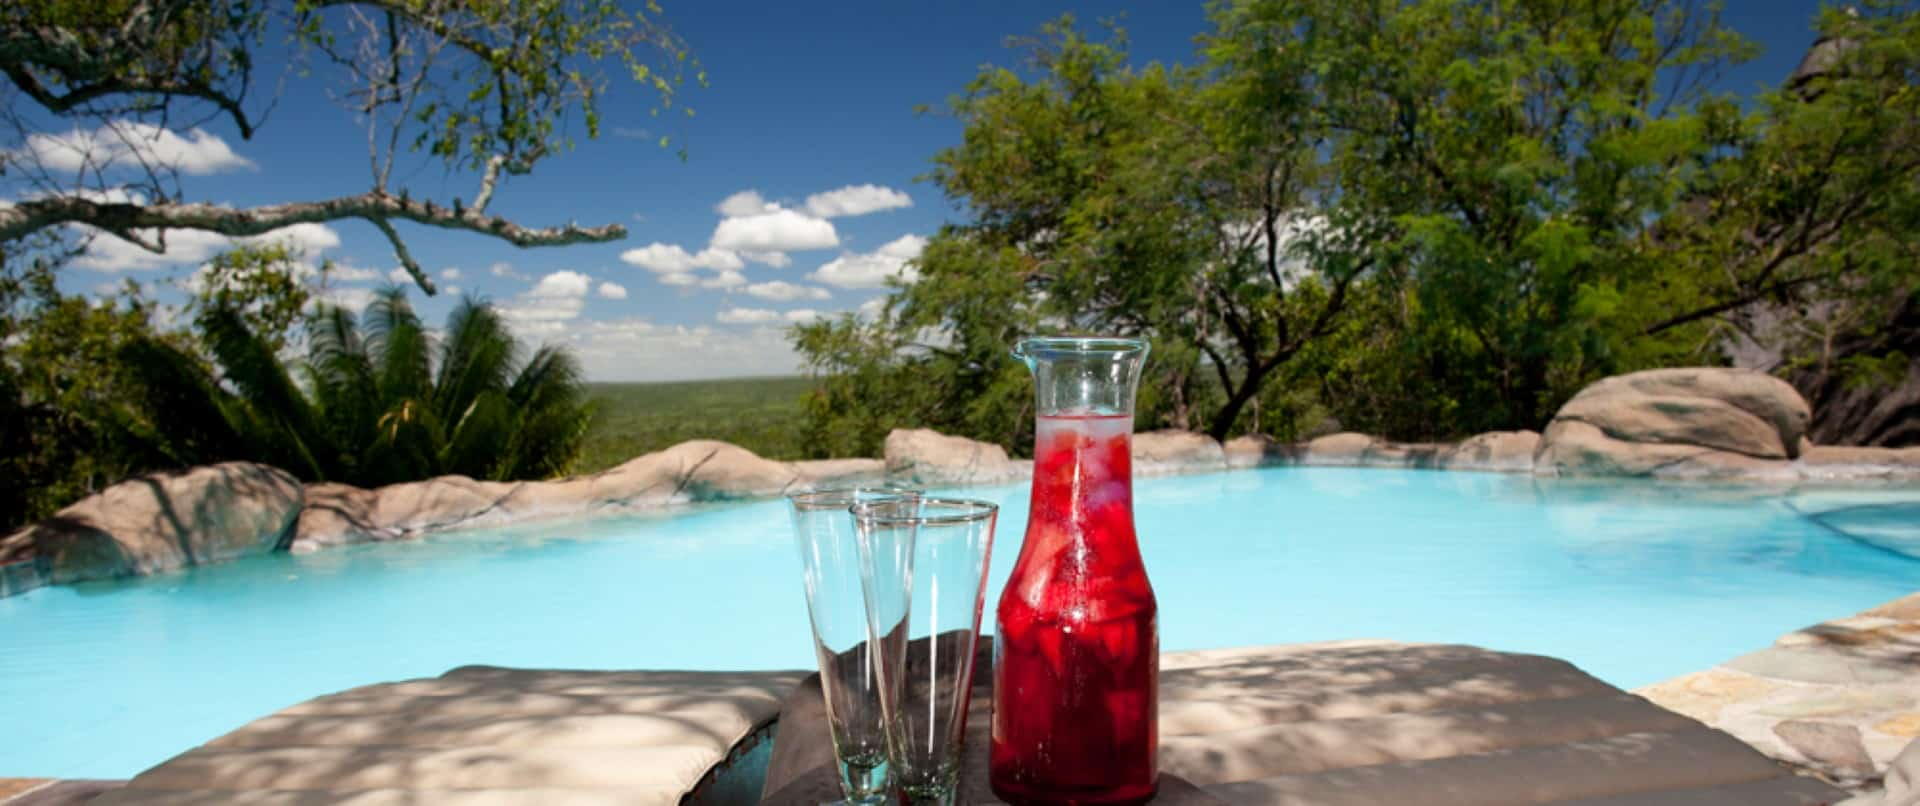 Ulusaba Rock Lodge swimming pool